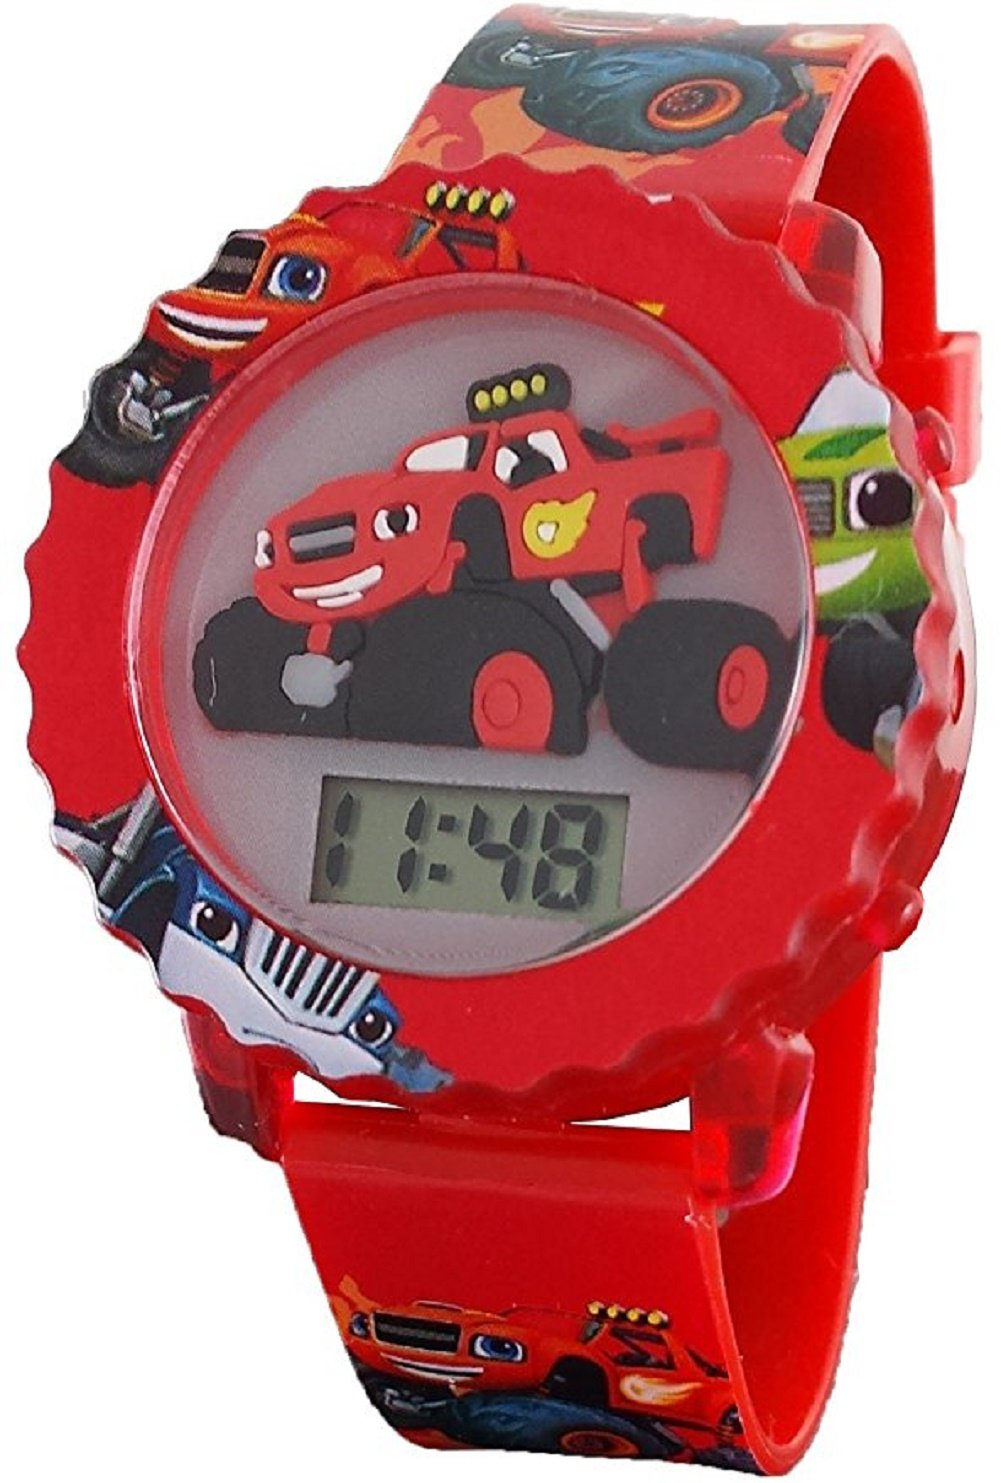 Nickelodeon Blaze and The Monster Machines Kid's Digital Light Up Watch BLZ4002